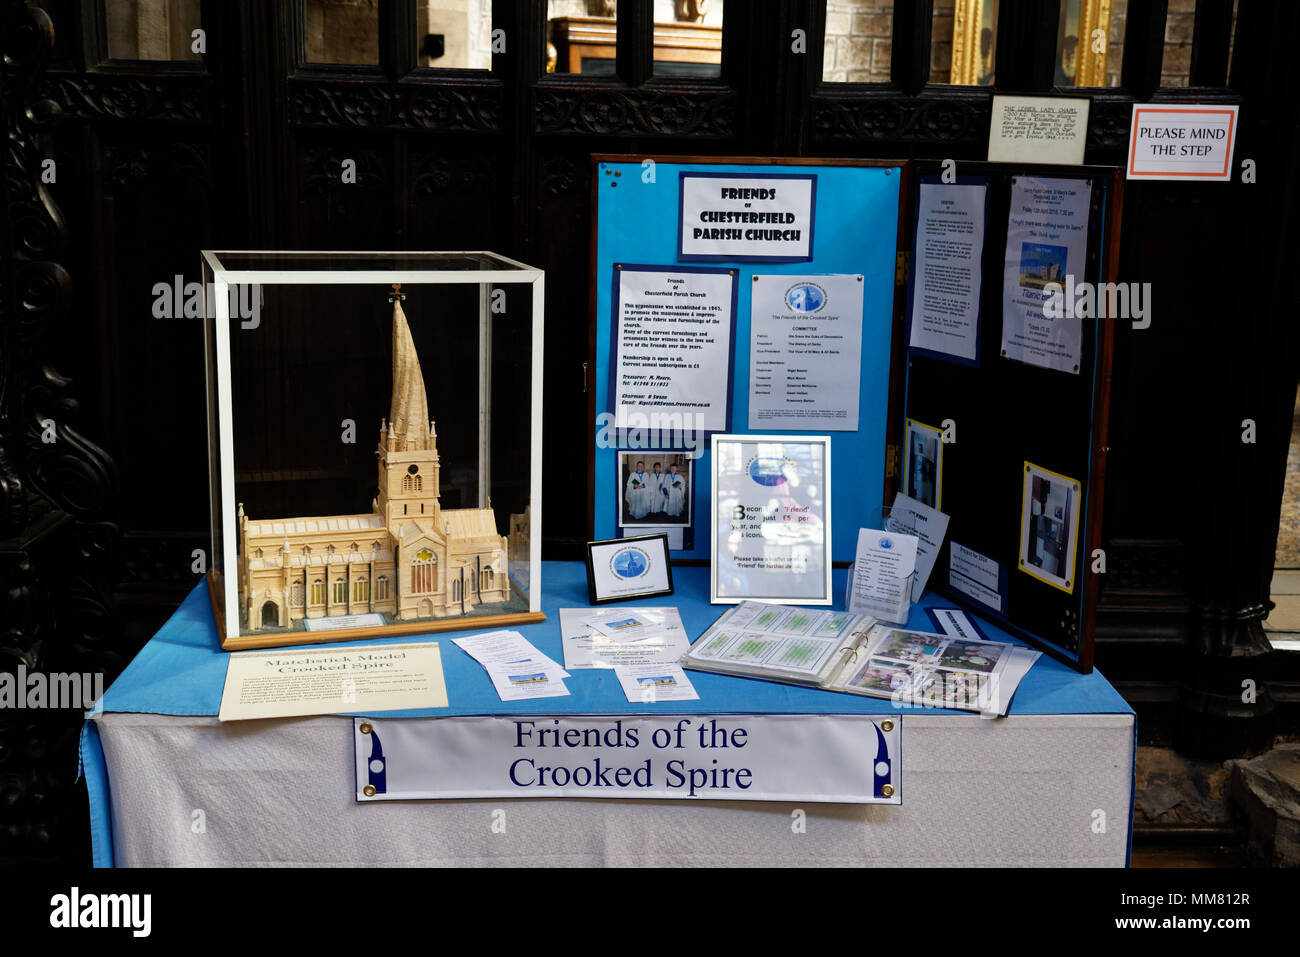 A matchstick model of Chesterfield's famous crooked spire - Stock Image